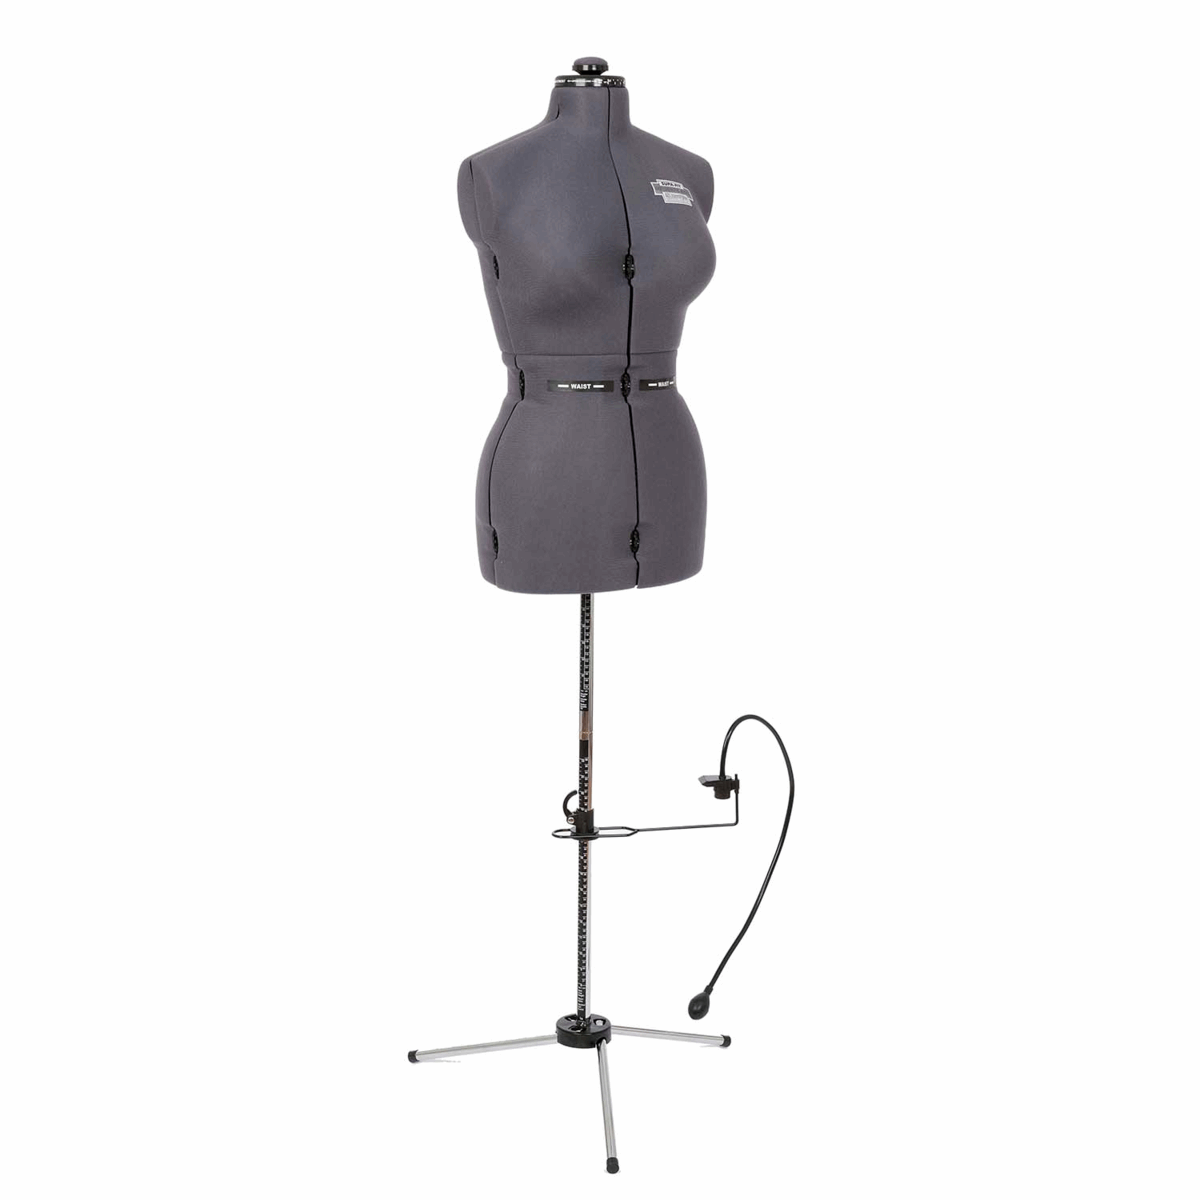 Picture of Supafit Deluxe Dress Form: Small